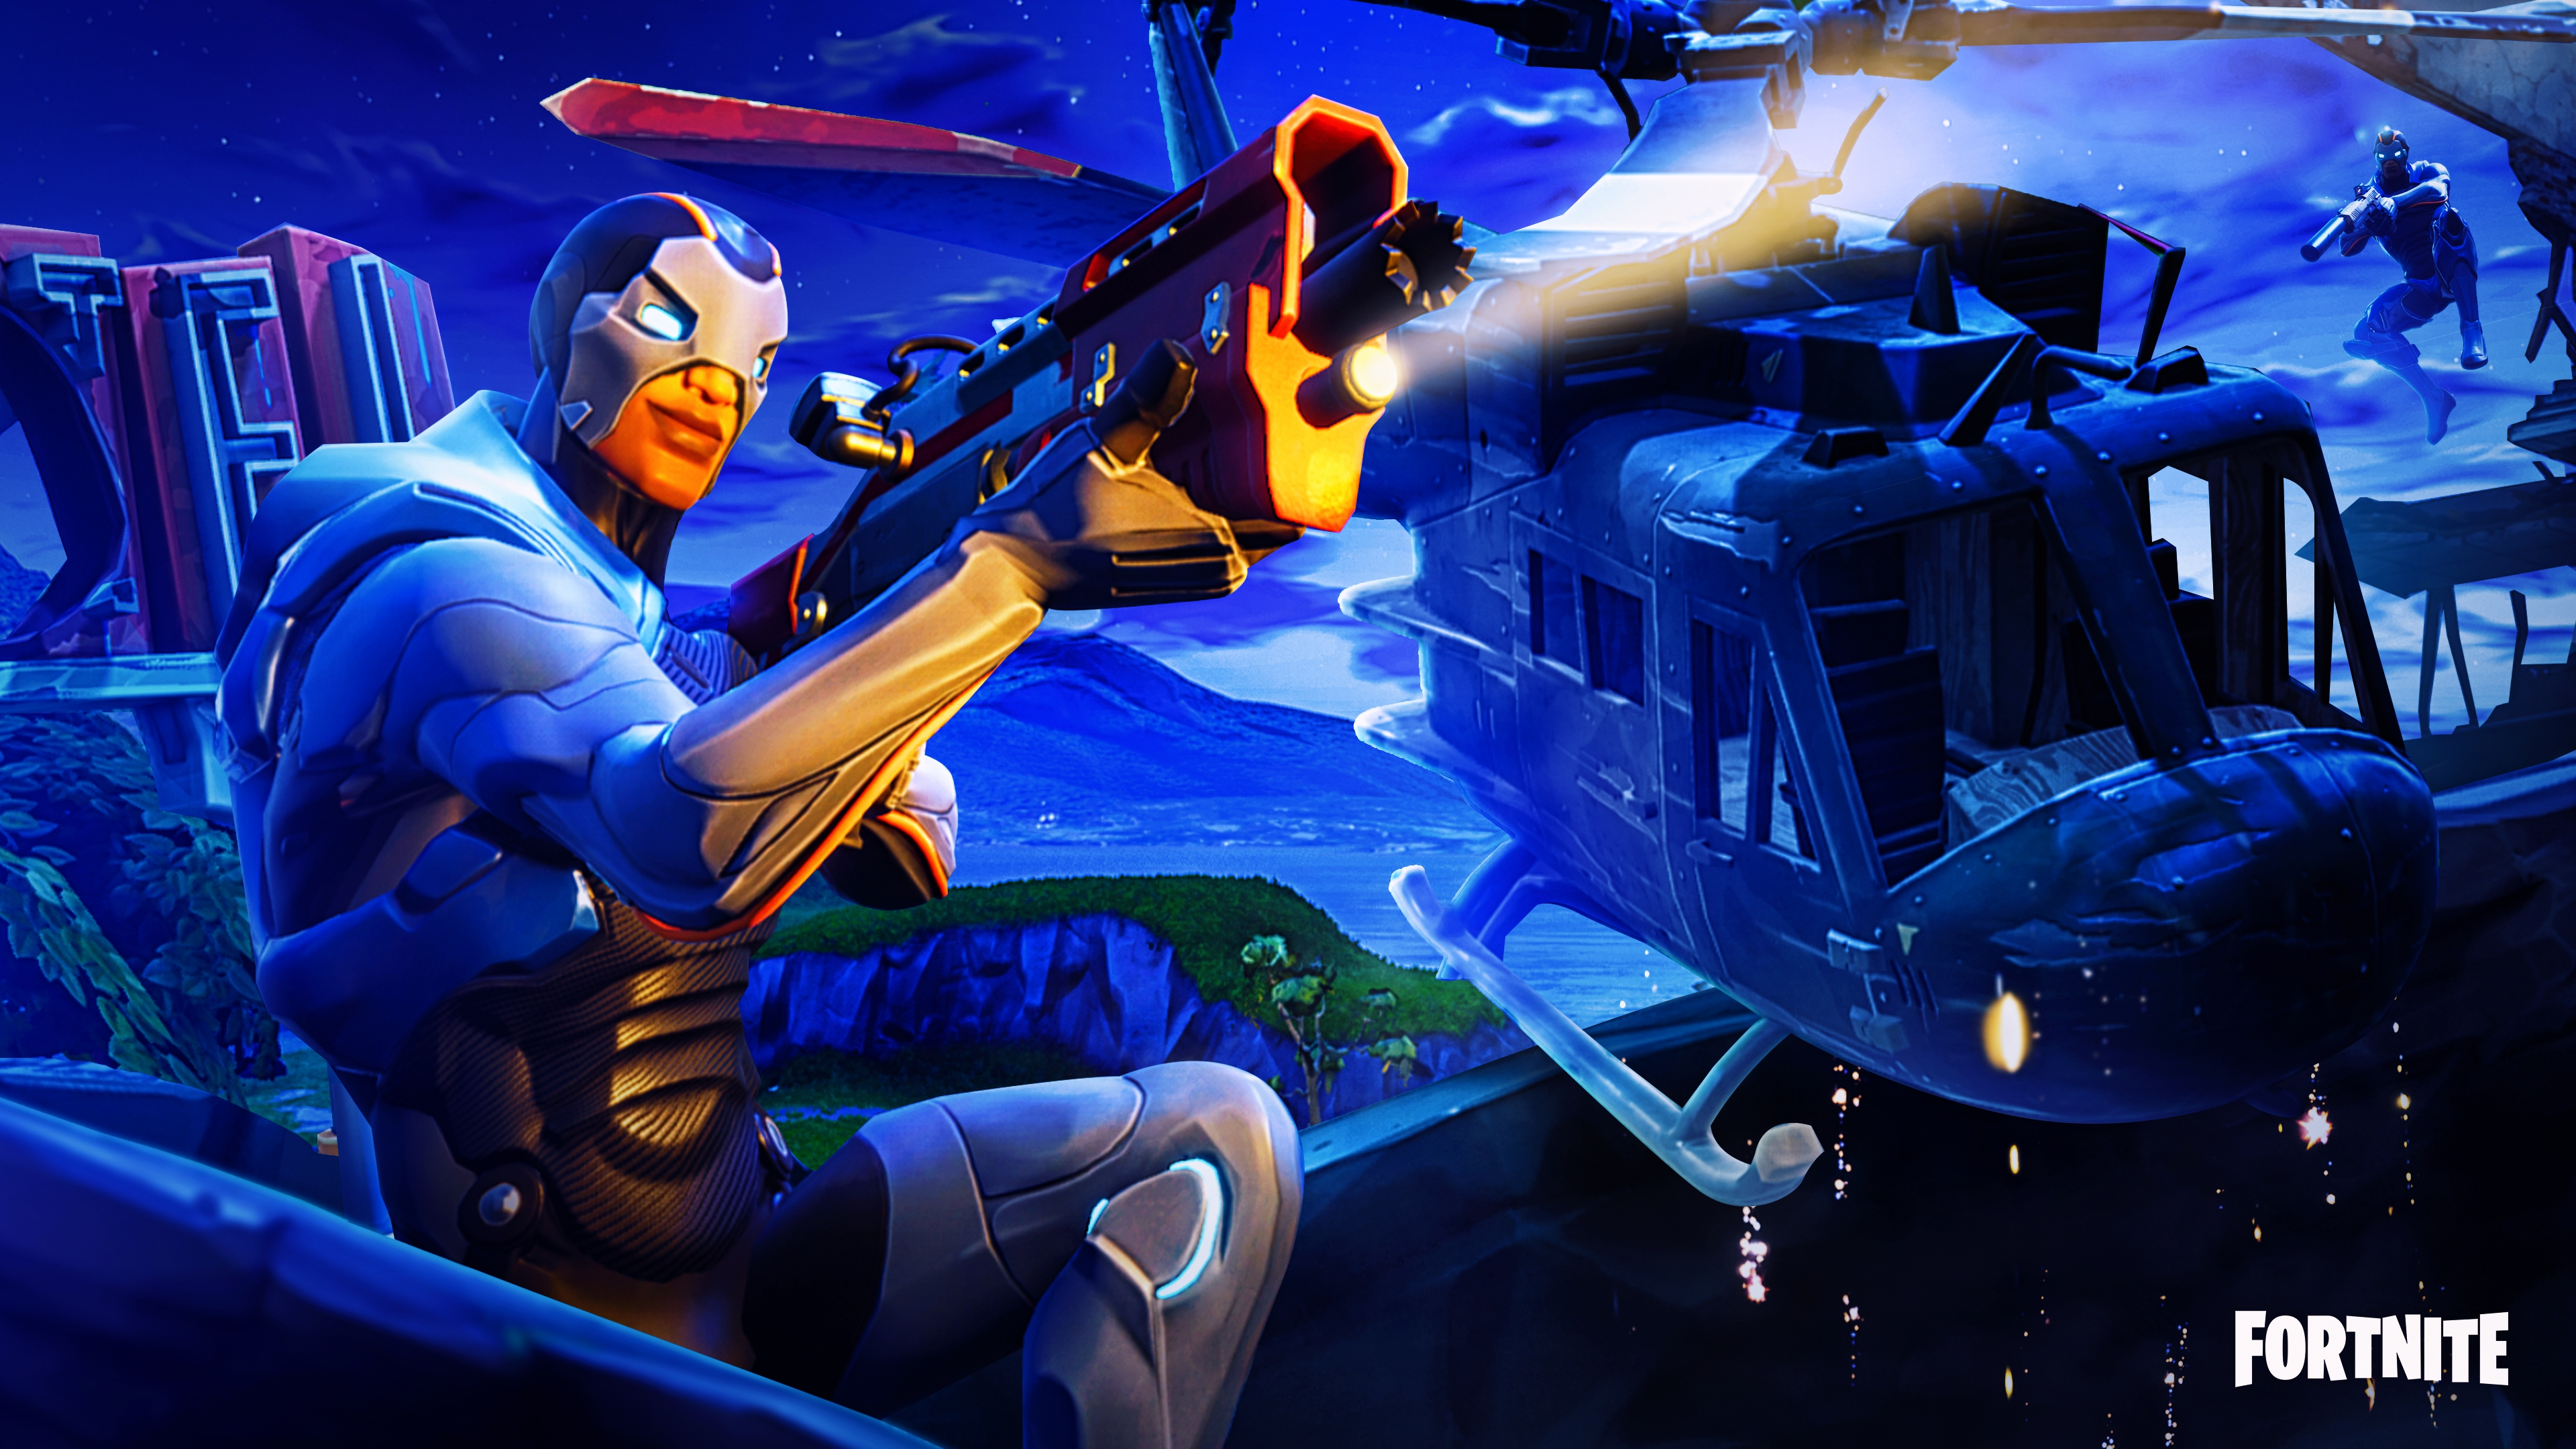 Fortnite background 72